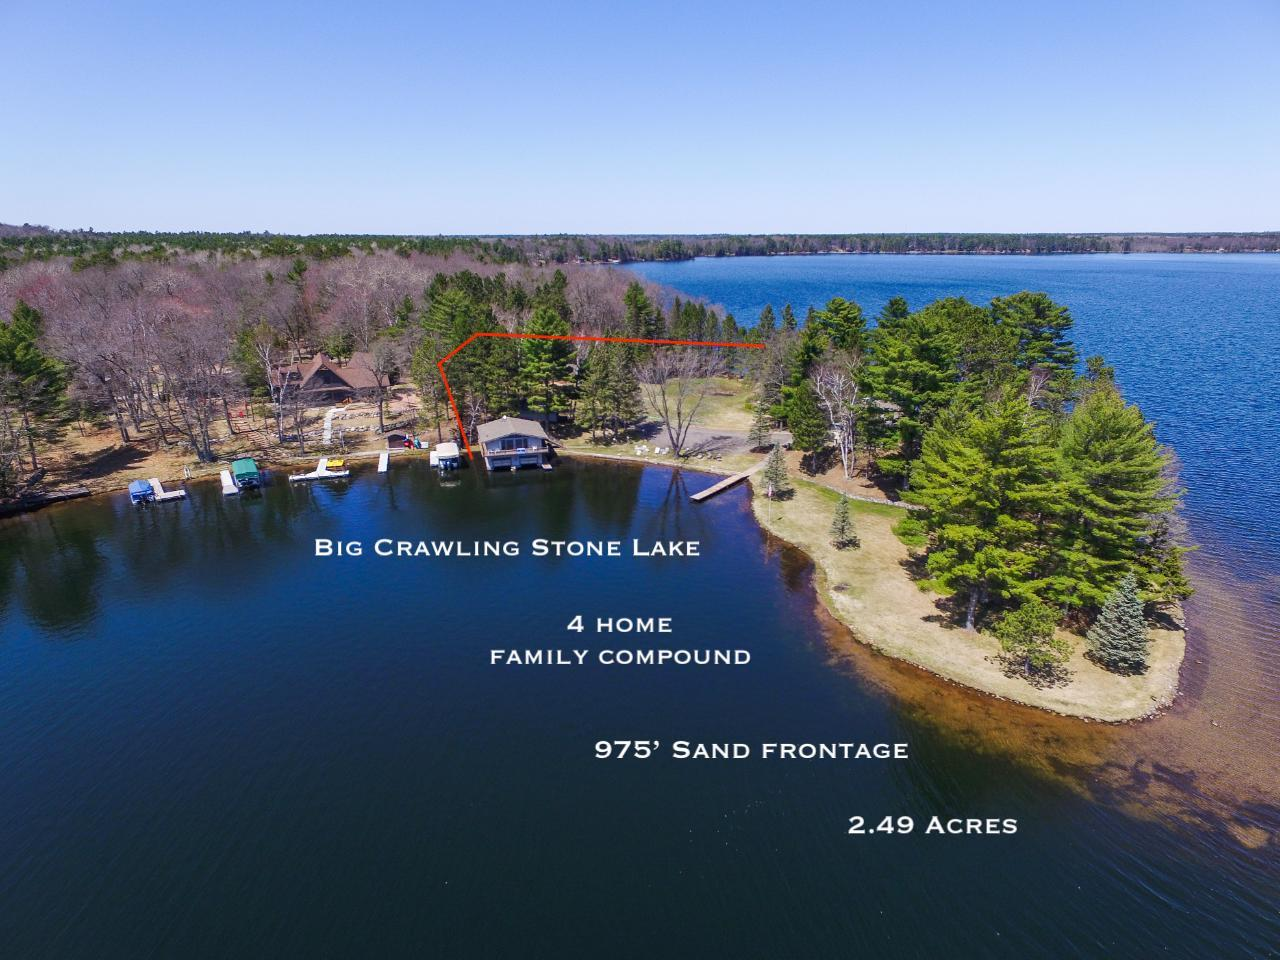 Crawling Stone Point Estate. Rarely does an estate to this stature become available. Here is your chance to own a sprawling compound with a wet boathouse and multiple guest homes that encompass the entire peninsula with the utmost privacy. Big Crawling Stone Lake (part of the 10 lake Fence Chain) is known for its sandy beaches, gin-clear water, and excellent fishing. The grand main home features 3 BR, 3 BA, a stately great room with stone fireplace, and water views from every room. The wet boathouse has 3 BR, full bath, & kitchen. Below are 2 stalls to park your inboard ski boats and endless toy storage. There are 2 guest homes that each have 3 BR, a full bath, kitchen and multiple garages. This property has been in the same family for many generations with so many memories created here. With 2.49 acres and 945' perfectly level frontage, you would own one of the rarest parcels on this lake with endless lake views! Visit www.crawlingstonepoint.com for add. info!